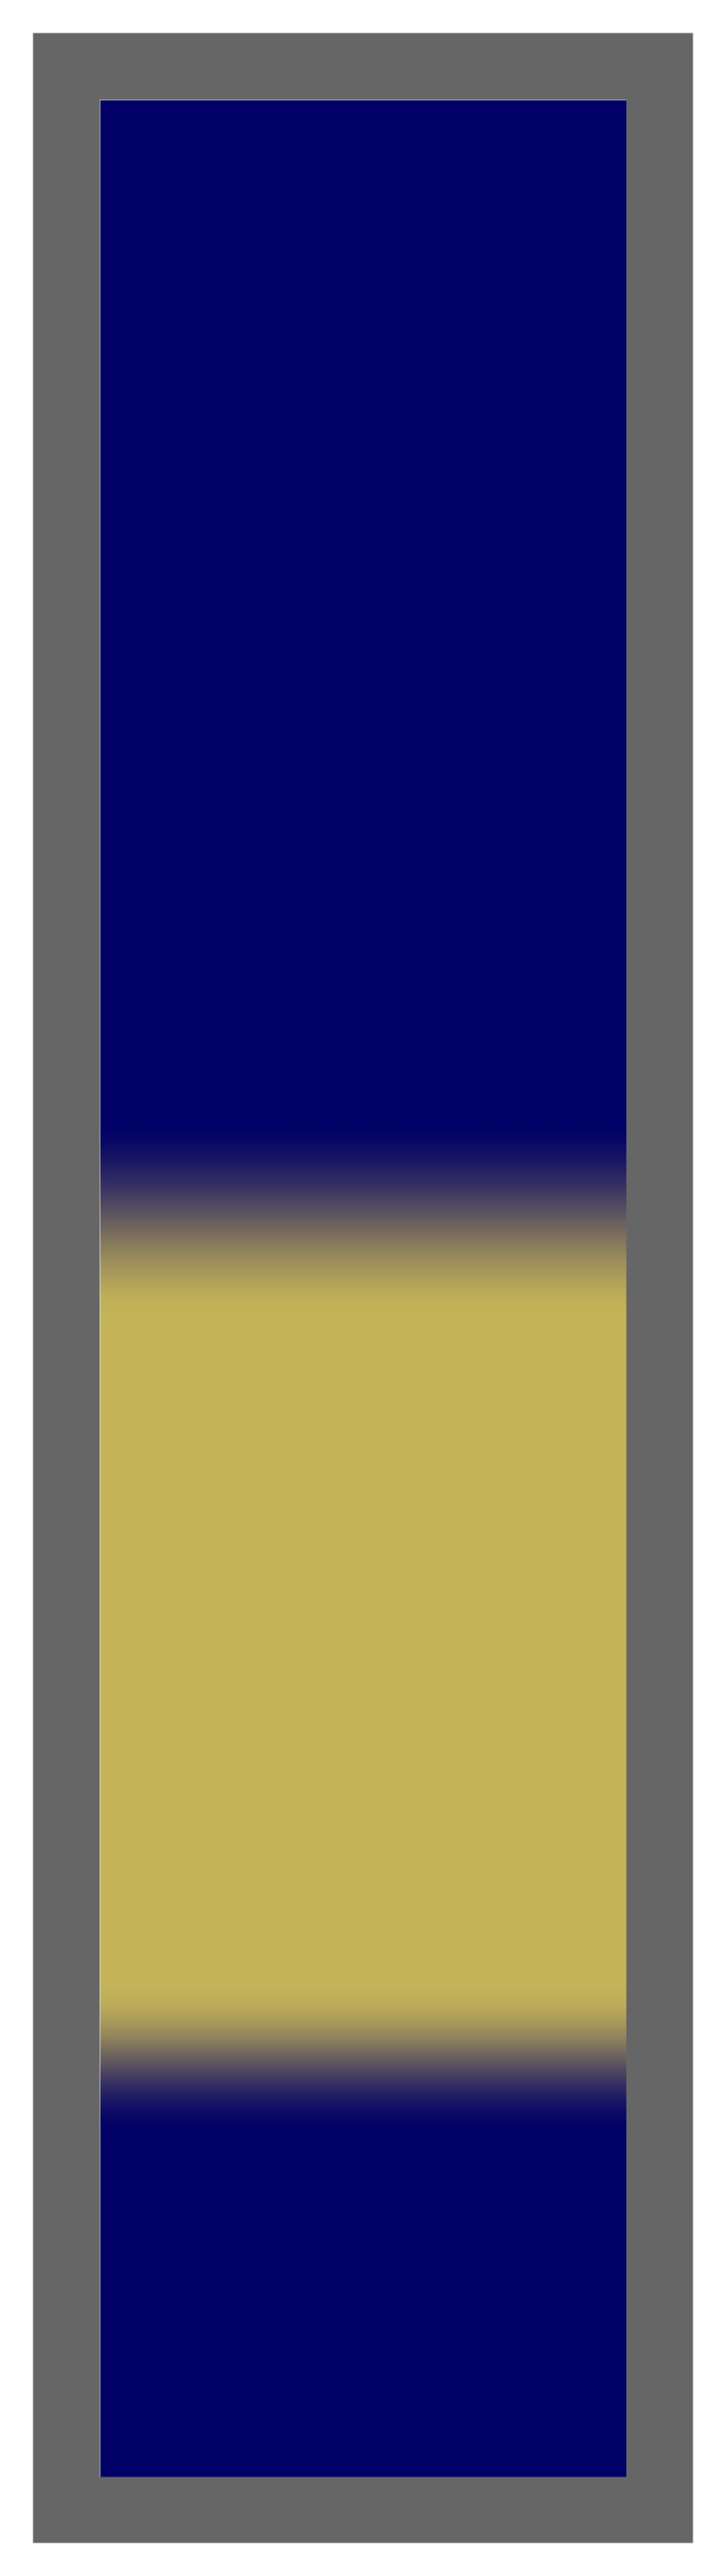 Navy-Vegas Gold-Navy Ombre